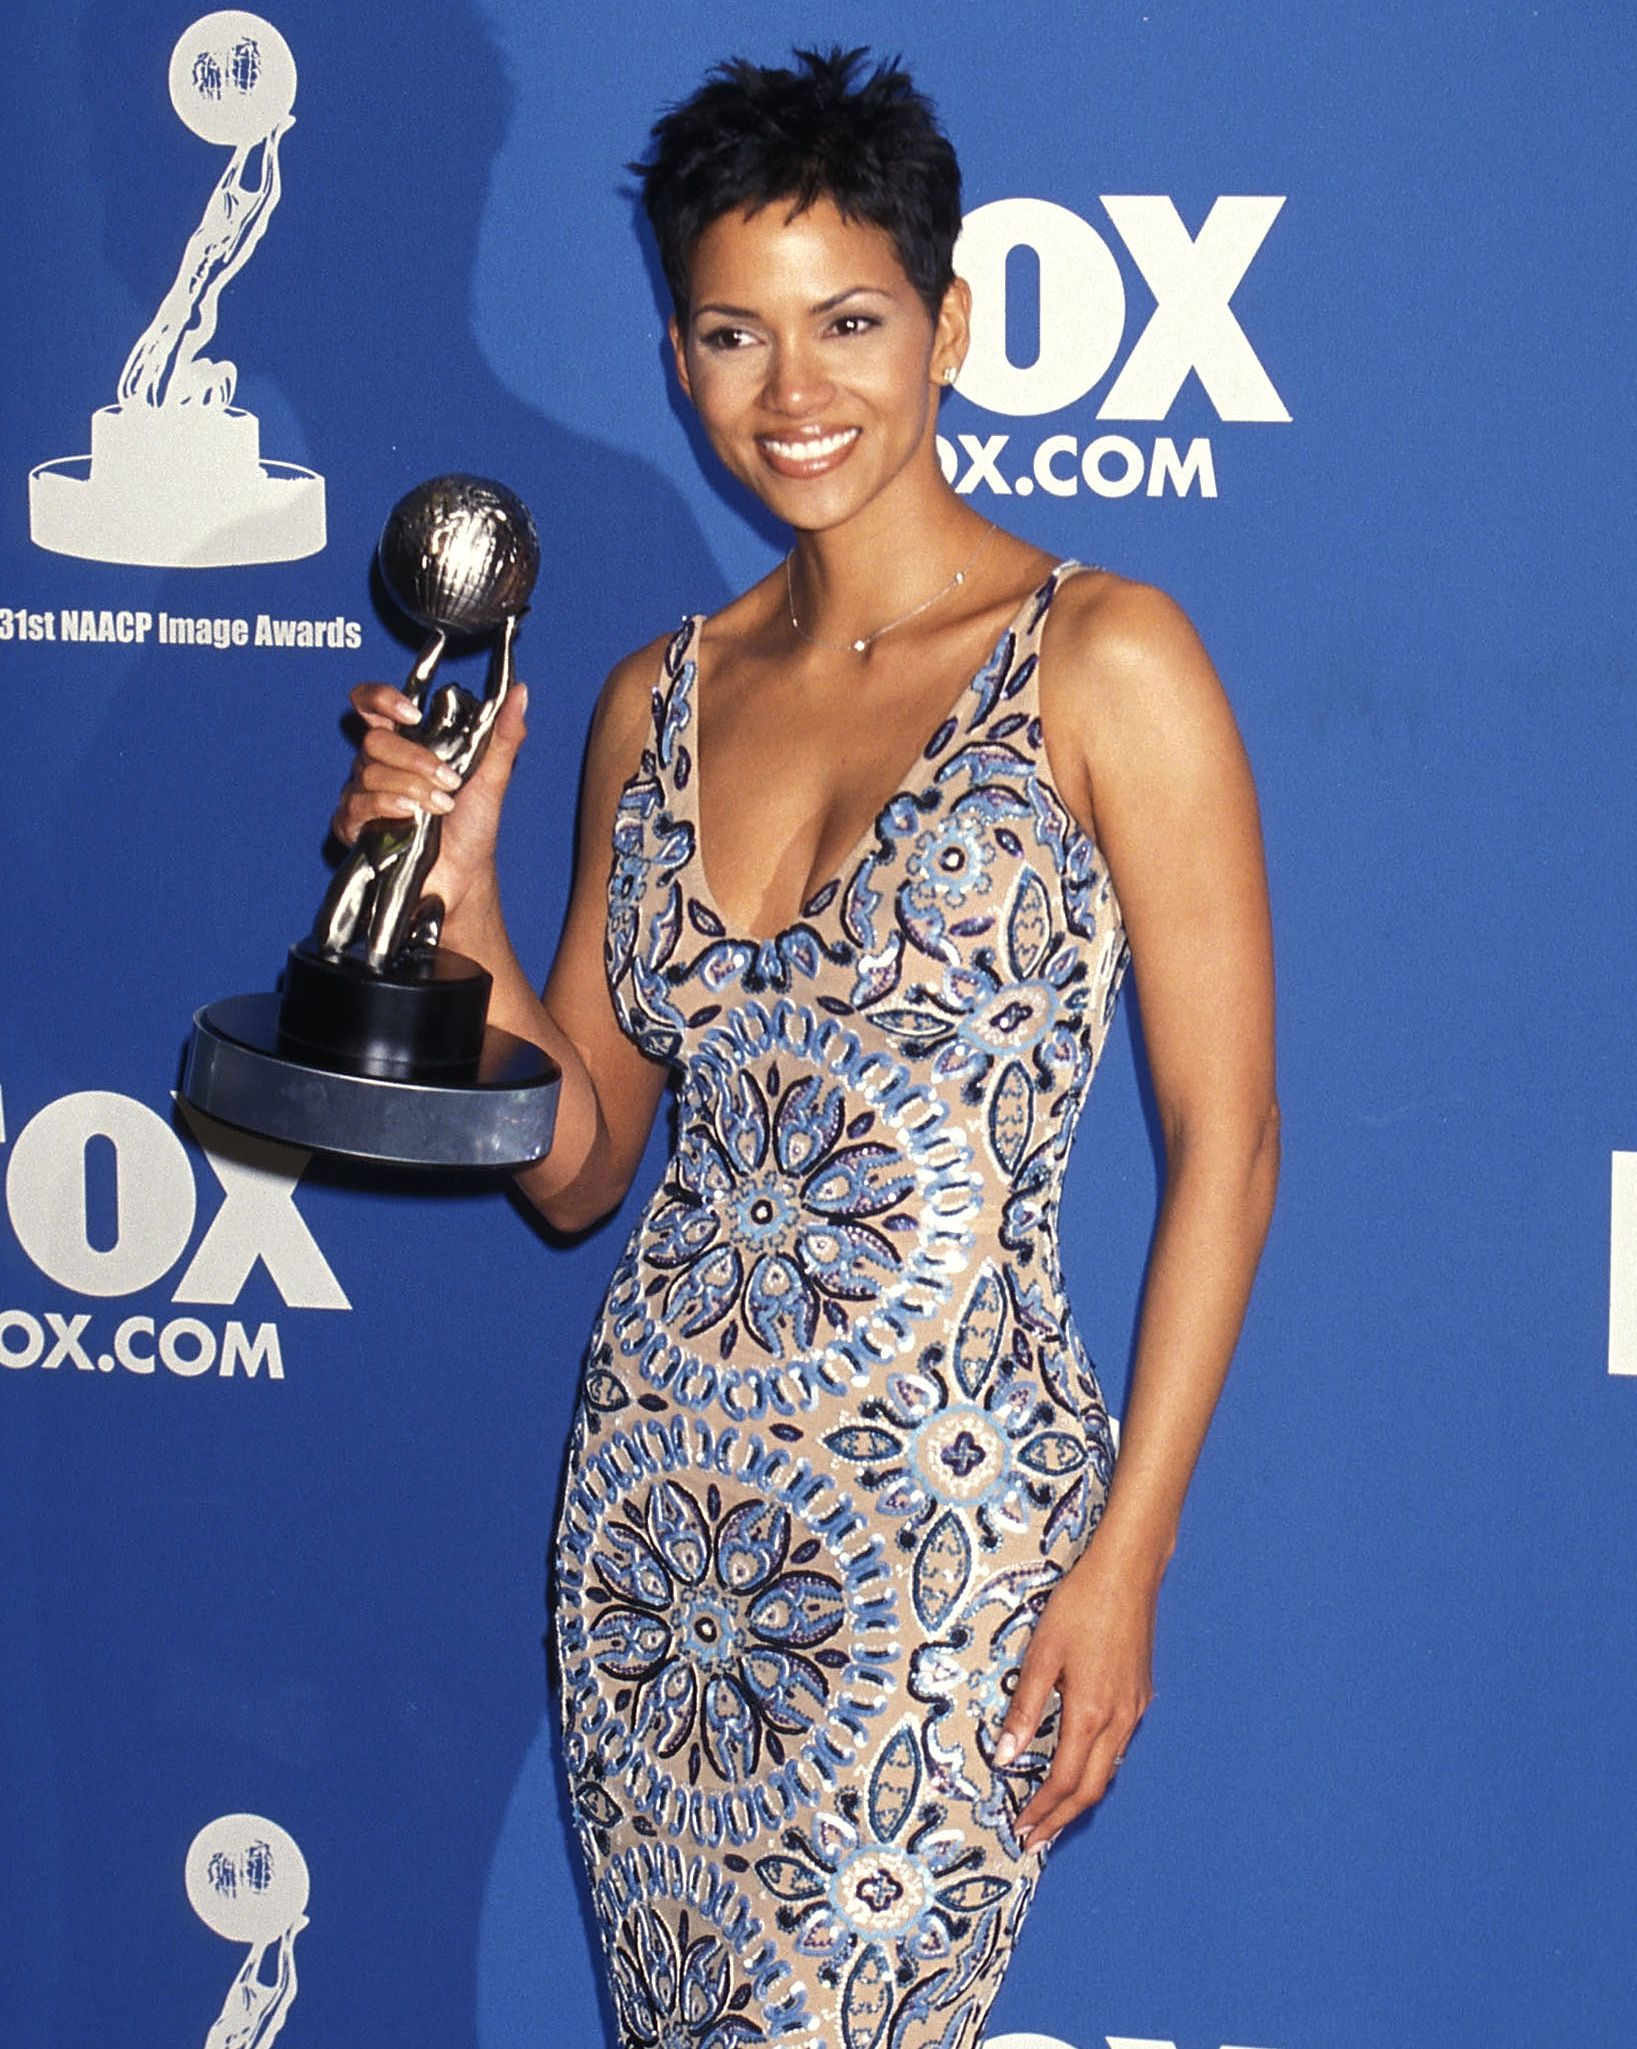 Well-Deserved Wins Berry took home two NAACP Image Awards in 2000, including Entertainer Of The Year. She stunned attendees in the patterned, form-fitted dress and that persistent pixie.